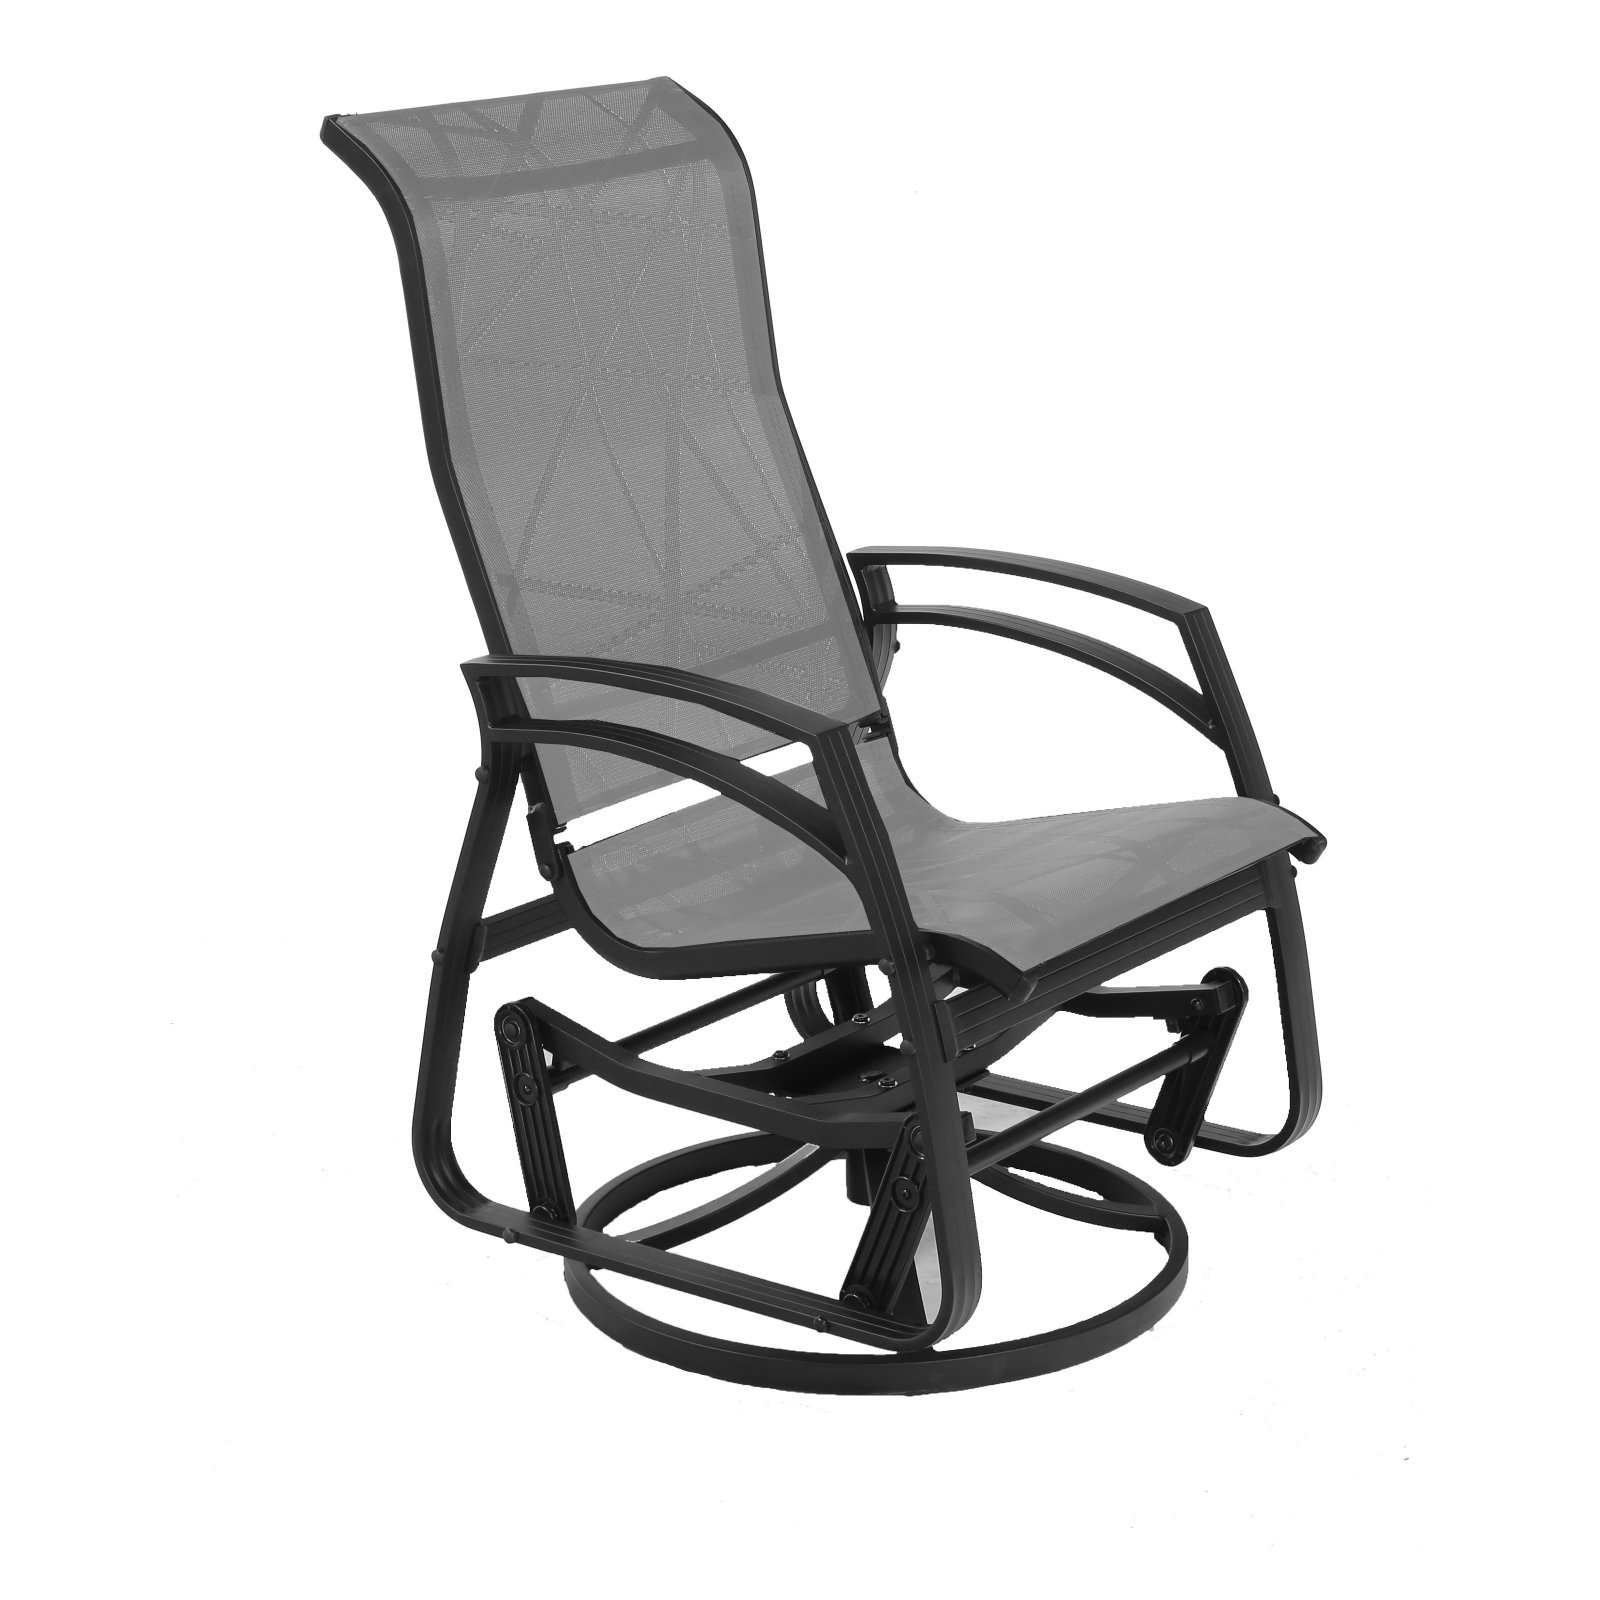 Dura Housewares Kansas Dallas Aluminum Swivel Glider Chair